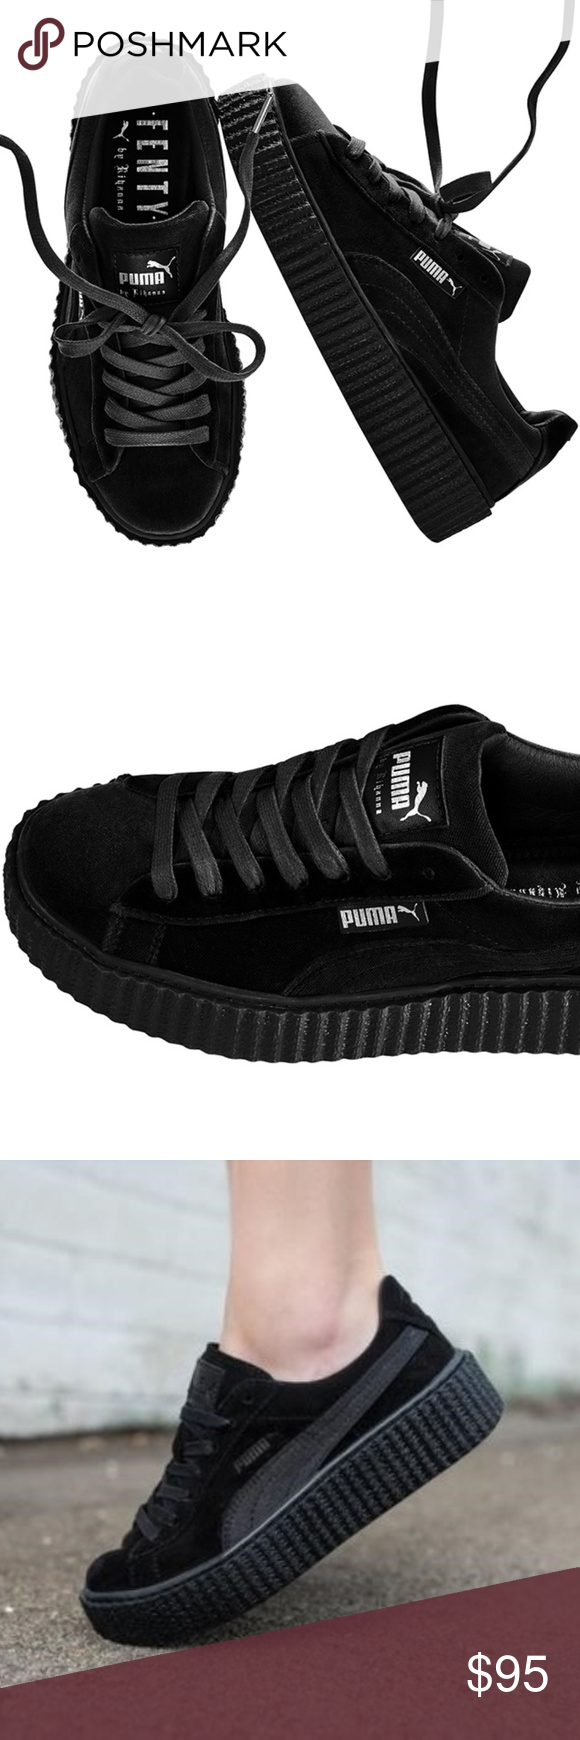 ff97740cbd8 Puma x Rihanna Velvet Creepers - Black 6 Rihanna x Puma collabs Velvet  Creeper in Black in US 6. It s a bit snug so can fit 6.5 as well. Worn once  and ...